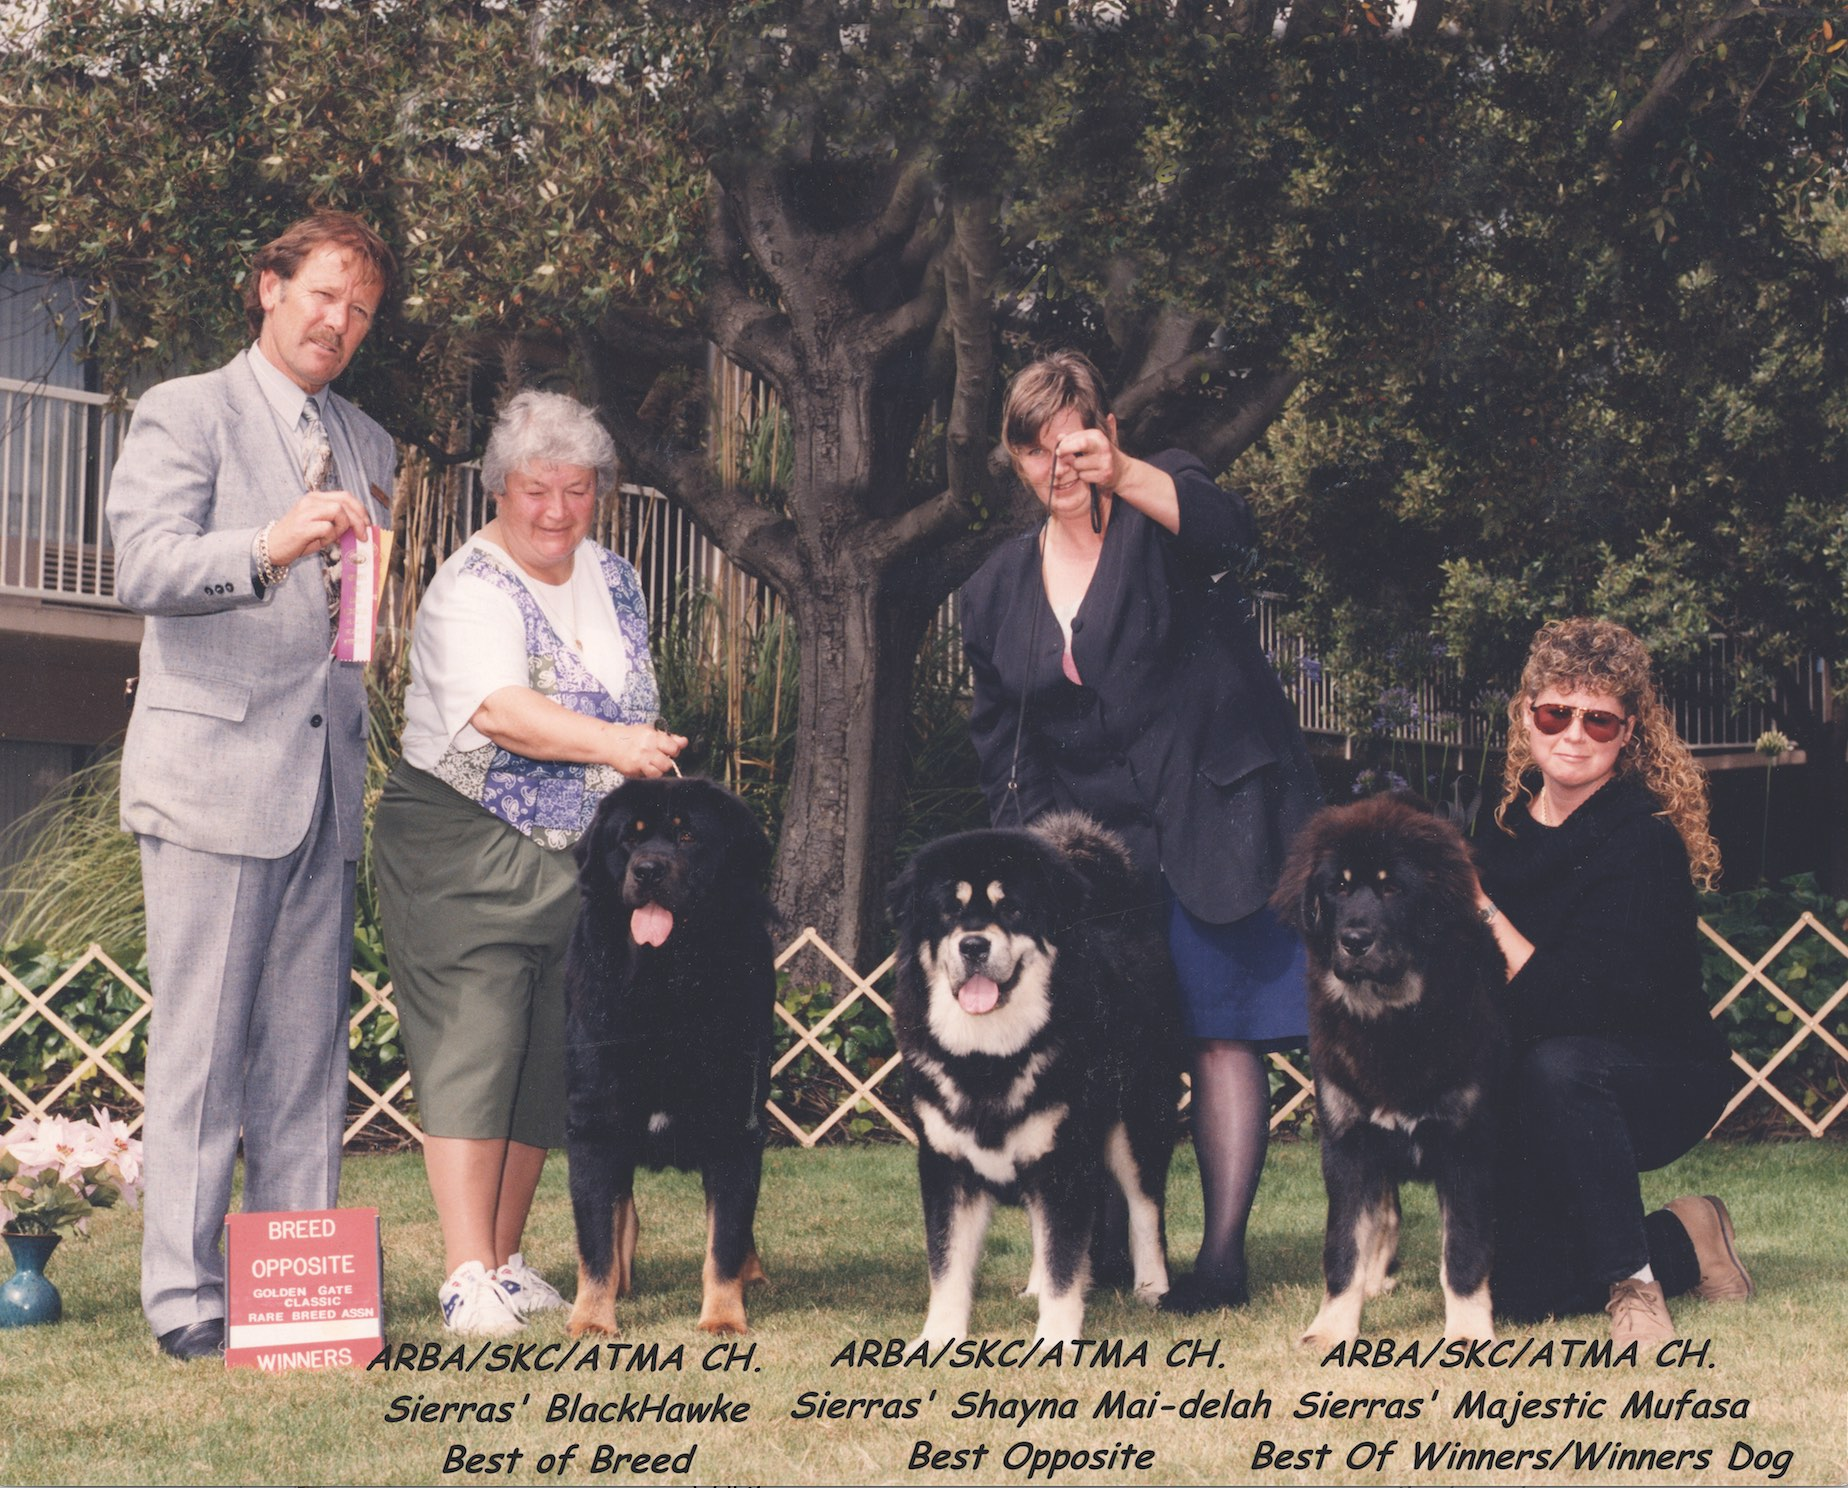 At the 1995 Golden Gate San Francisco ARBA show, under judge Warren Rice of Australia. From left, BOB Sierras' BlackHawke; Best of Opposite, Sierras' Shayna Mai-delah; and one of their get, Best of Winners/Winners Dog Sierras' Majestic Mufasa. As the show was in August, the dogs are not in full coat.